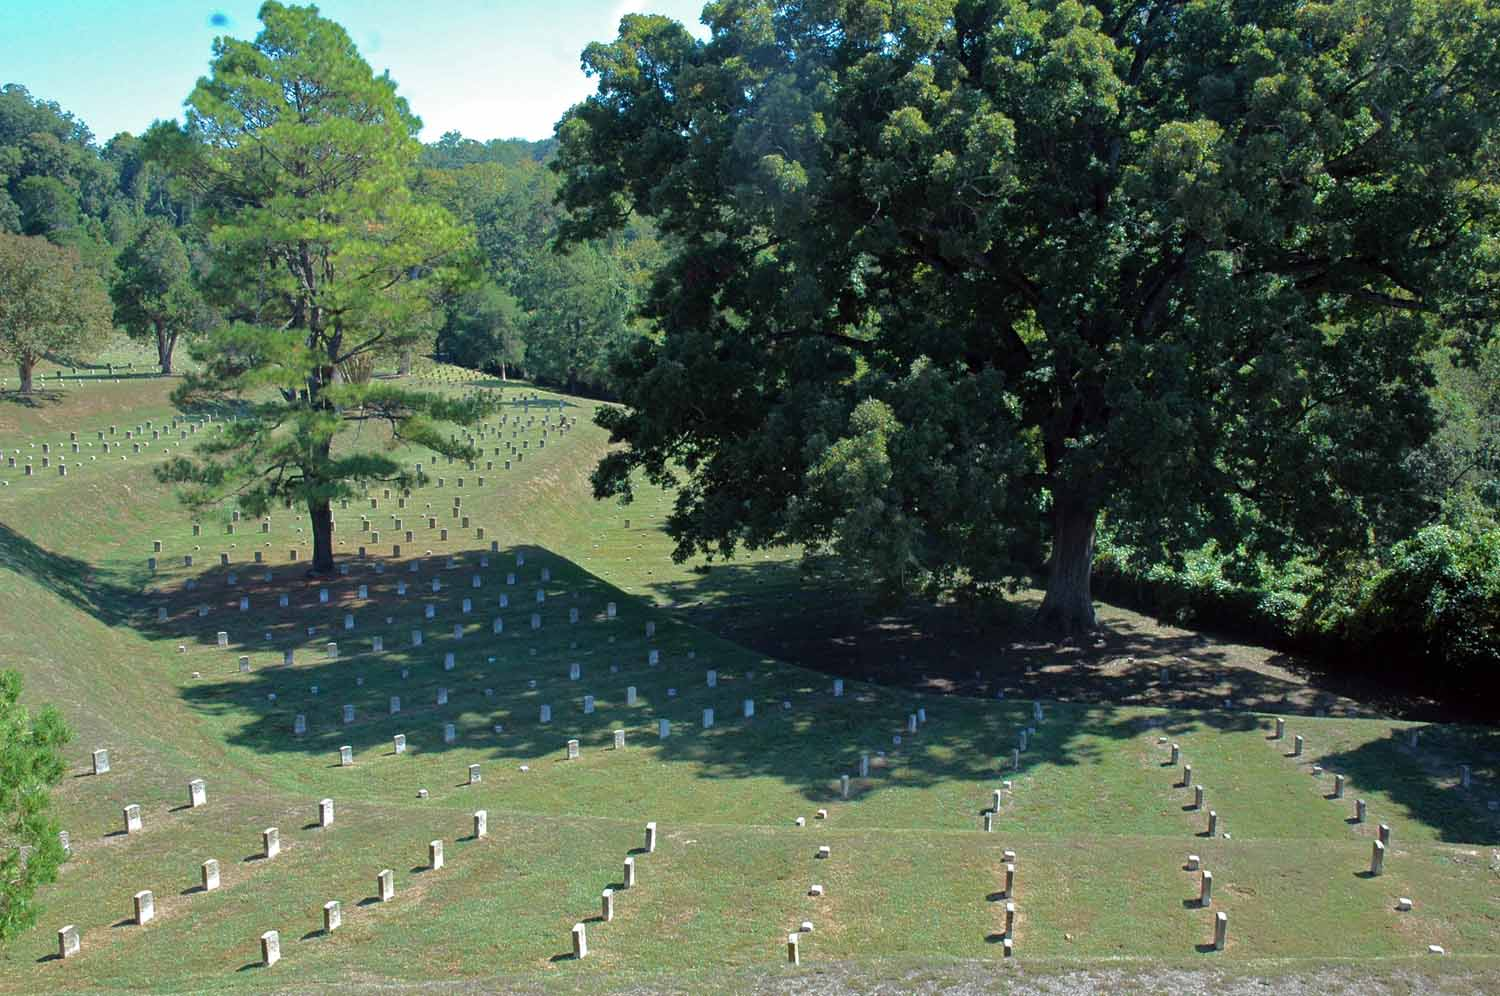 Vicksburg Cemetery - Over 20,000 Confederate and Union soliders lost their lives here...